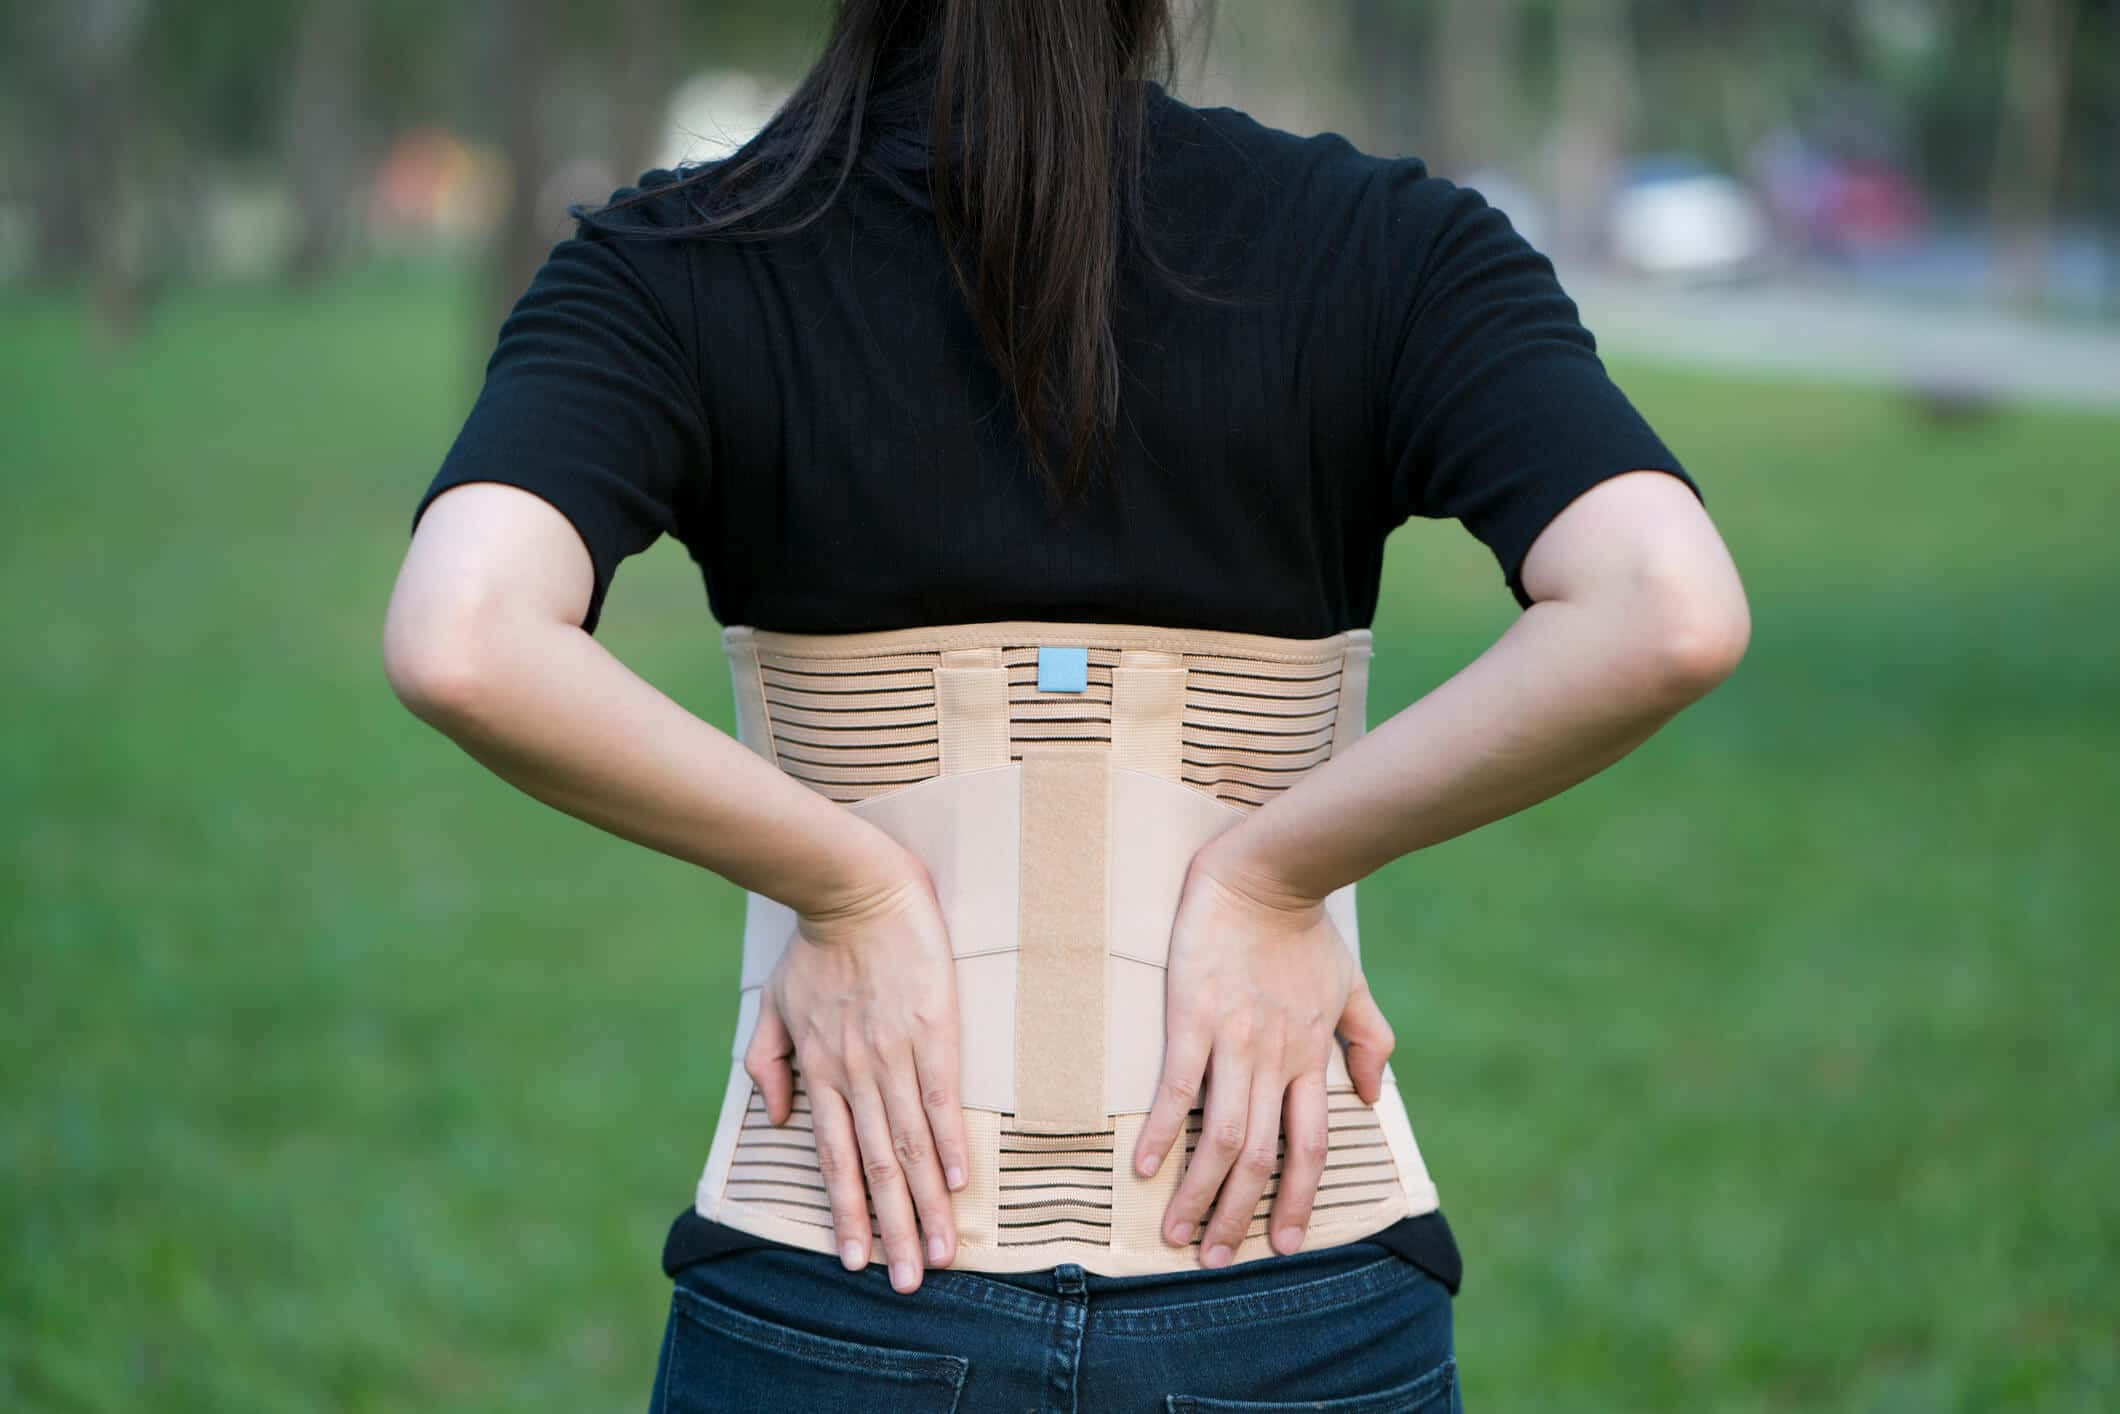 woman wearing a back brace